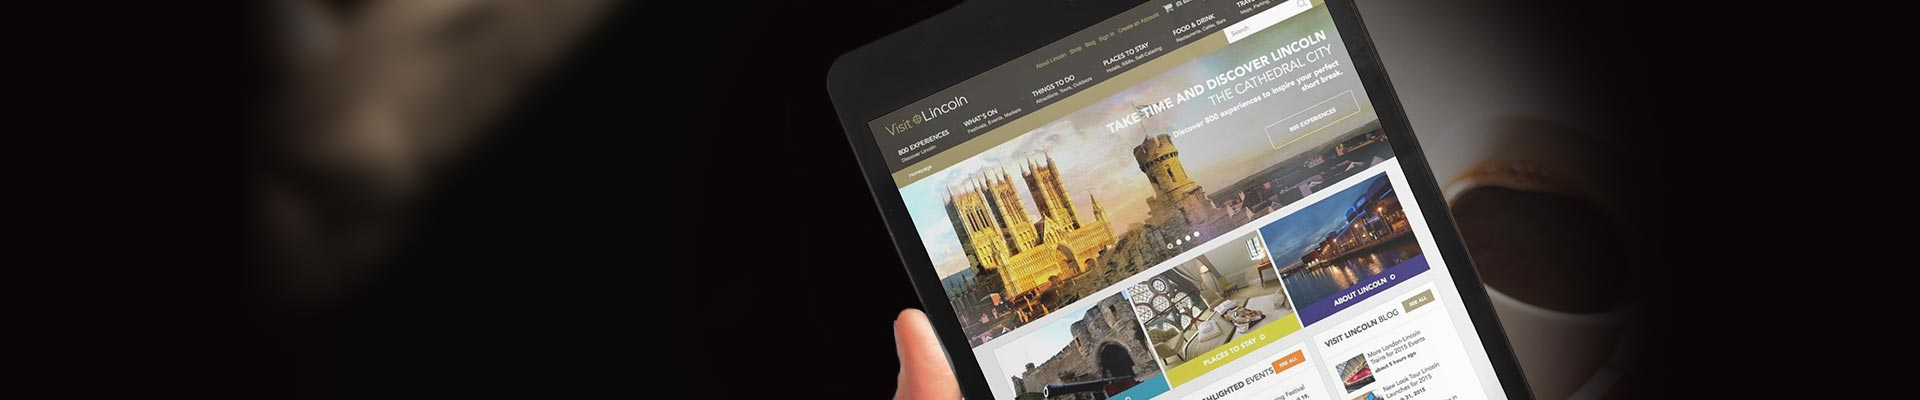 Website design for Lincoln tourism. Discover how we help raise the profile of the historic city of Lincoln